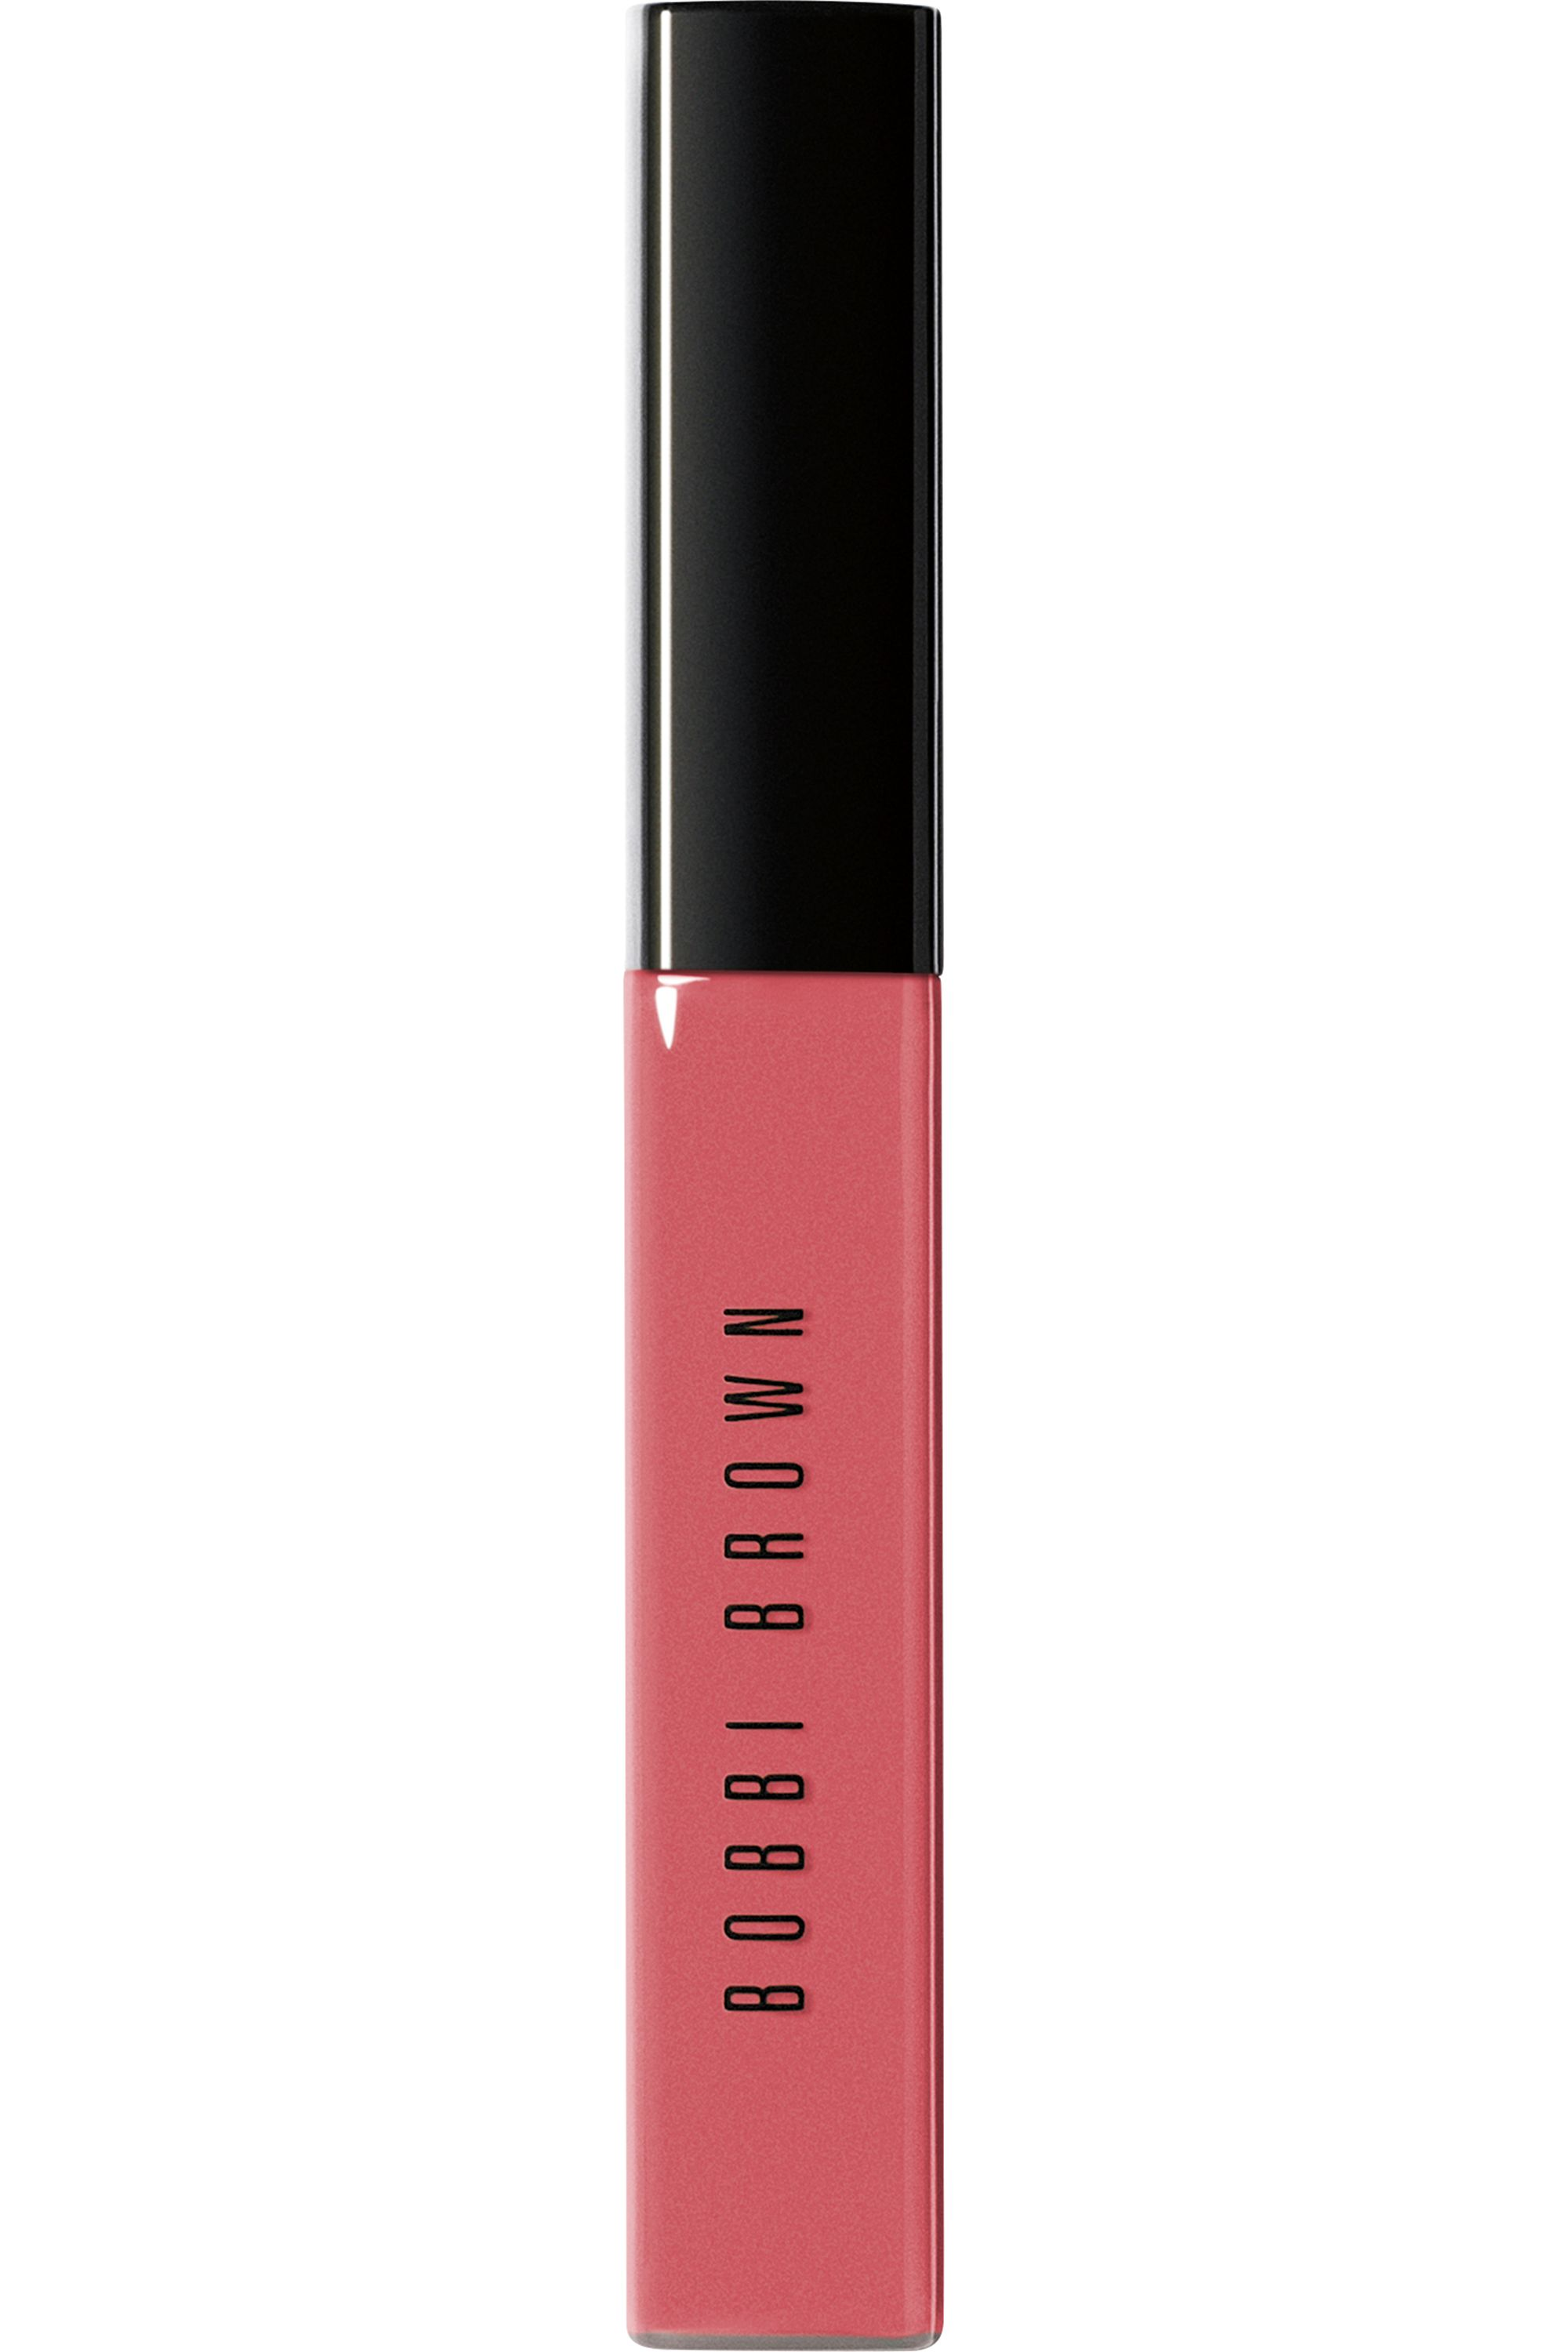 Blissim : Bobbi Brown - Gloss lèvres hydratant - Petal